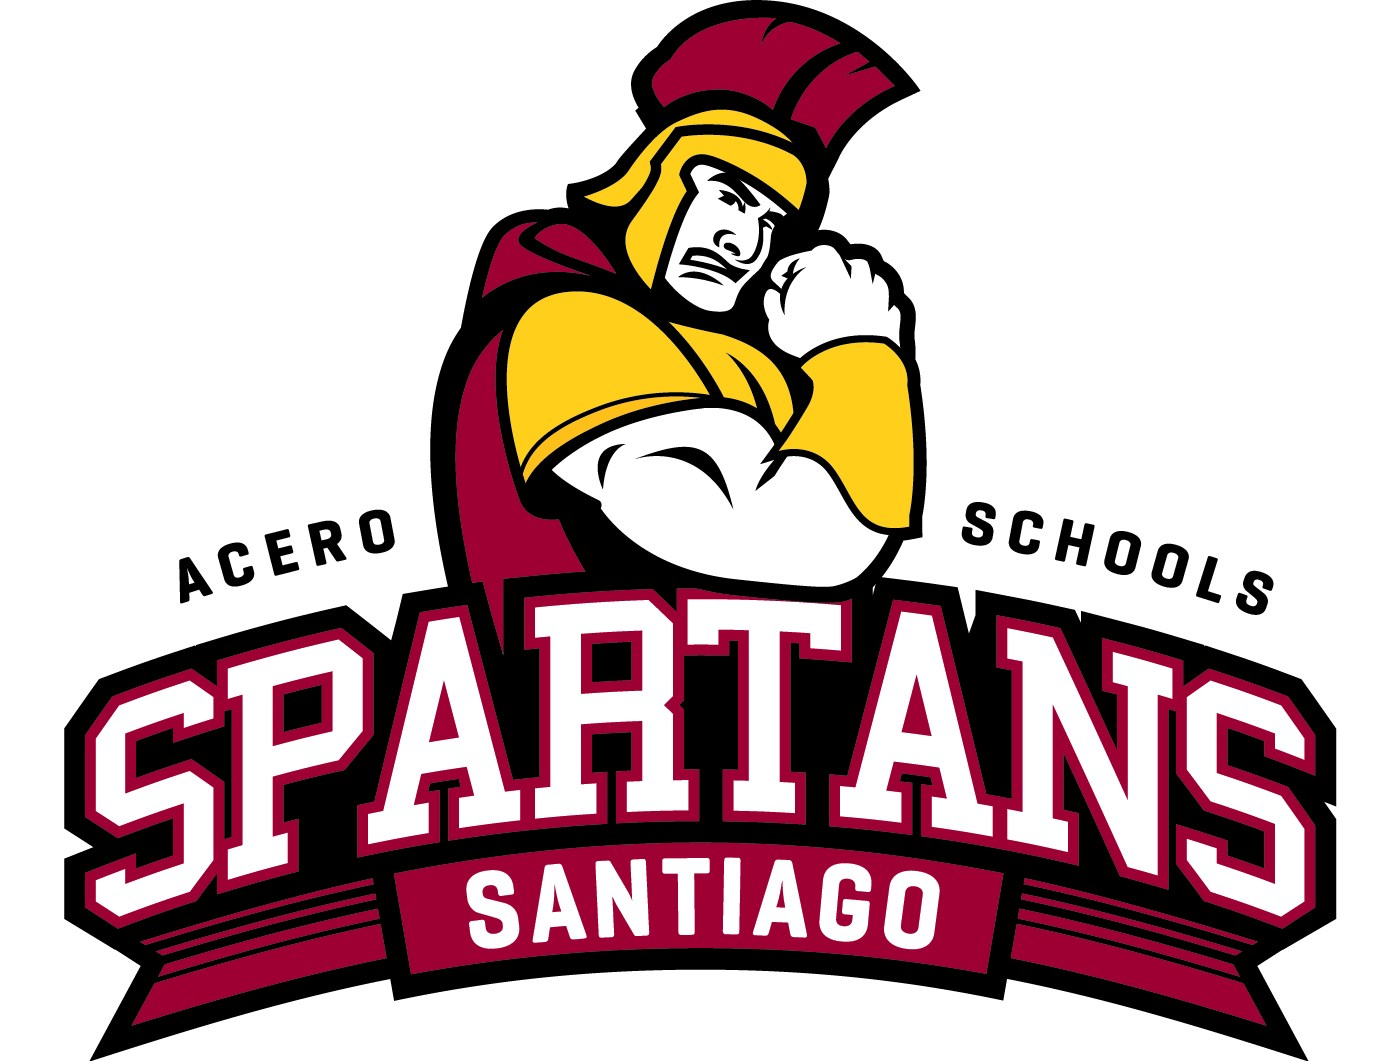 The school logo depicts a Spartan warrior standing behind the word Spartans.